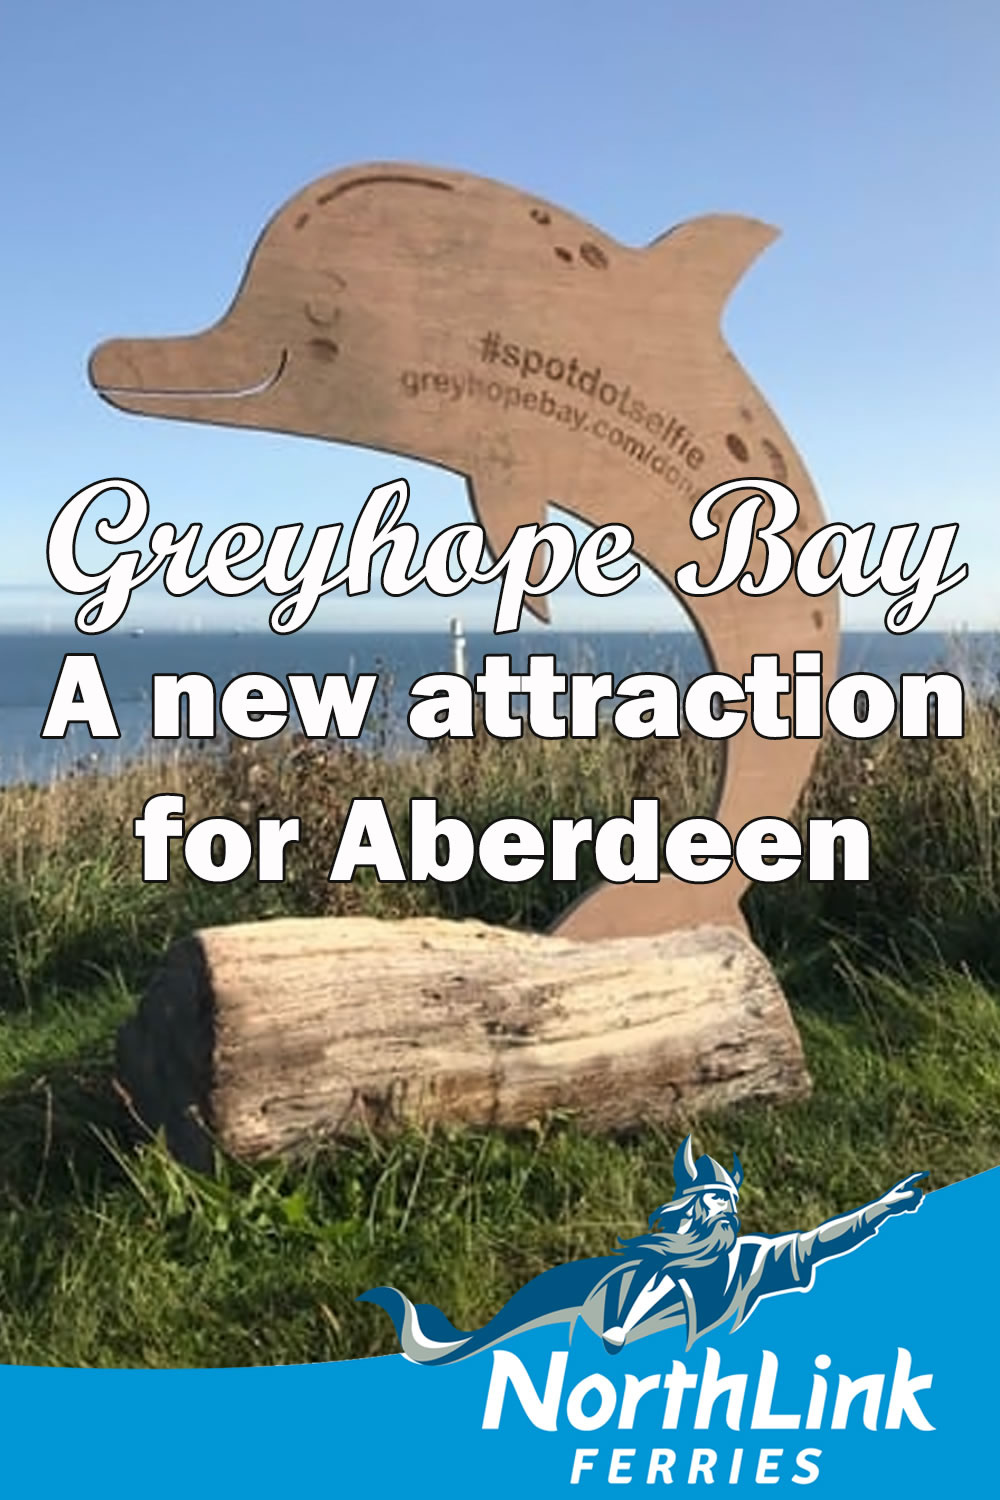 Greyhope Bay – a new attraction for Aberdeen